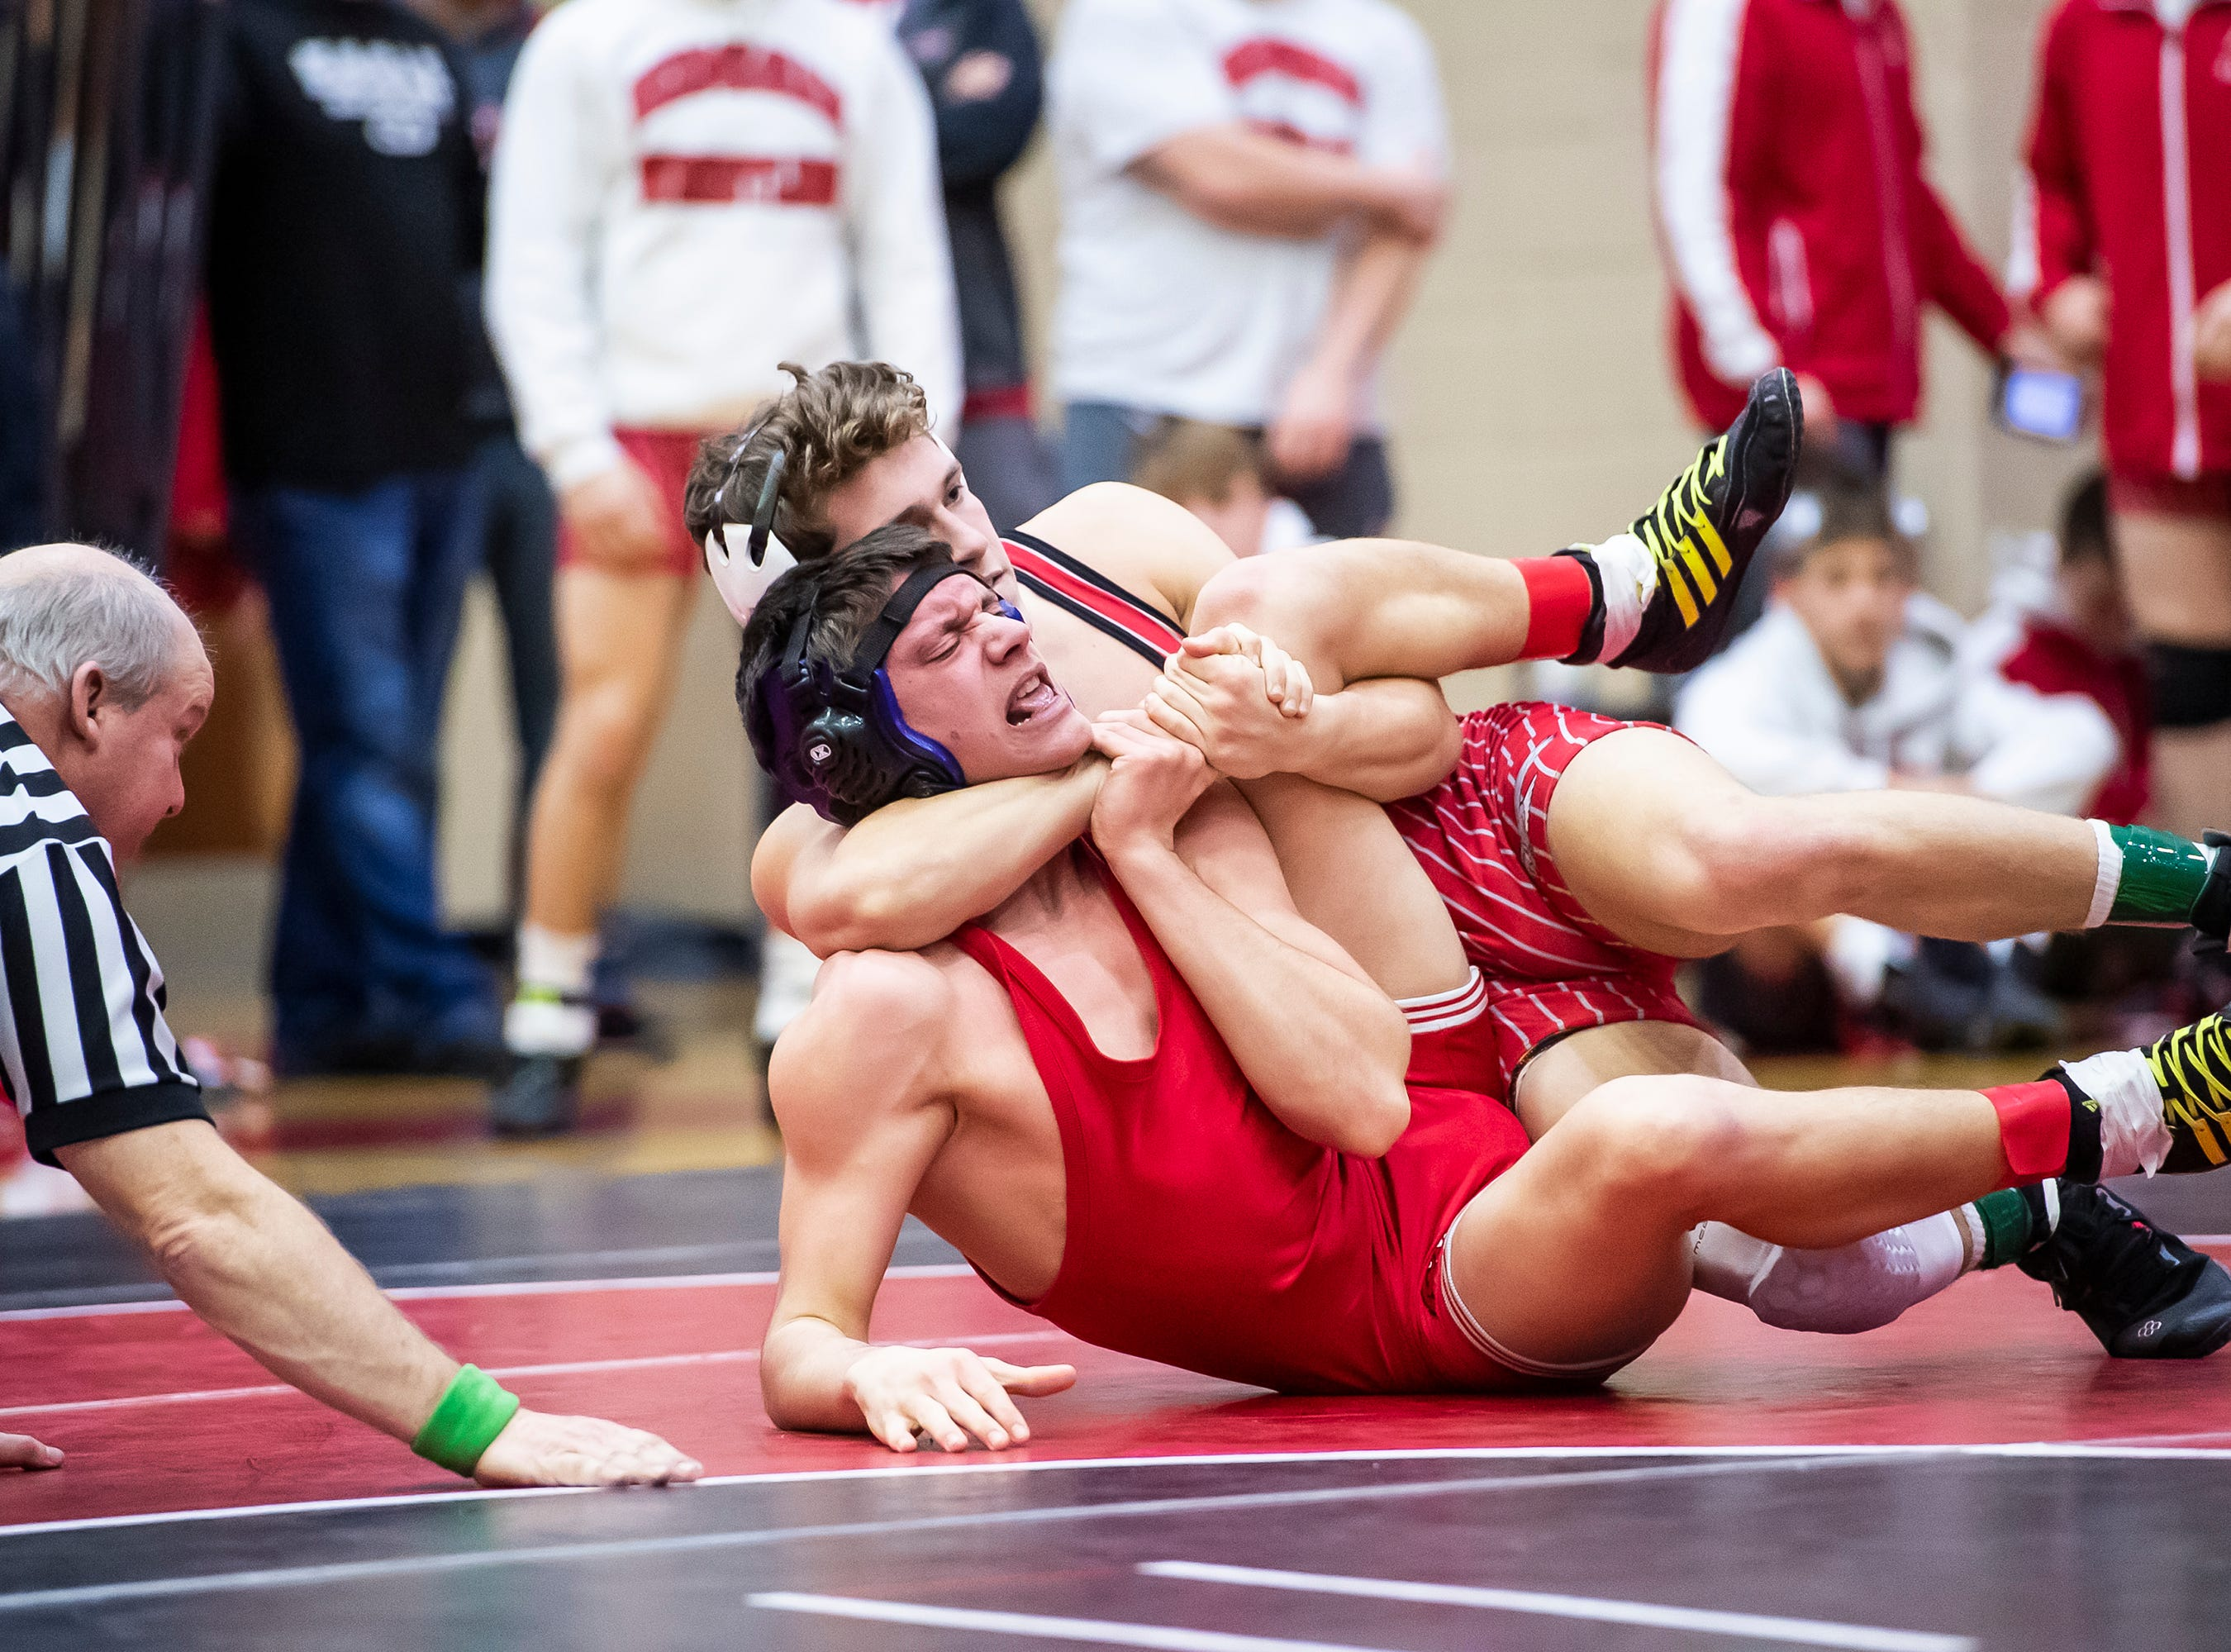 Bermudian Springs' Trenton Harder works to pin Hamburg's Shawn Keller in a 152-pound bout during a PIAA District III 2A semifinal match at Cumberland Valley High School January 31, 2019. The Eagles fell 43-24.